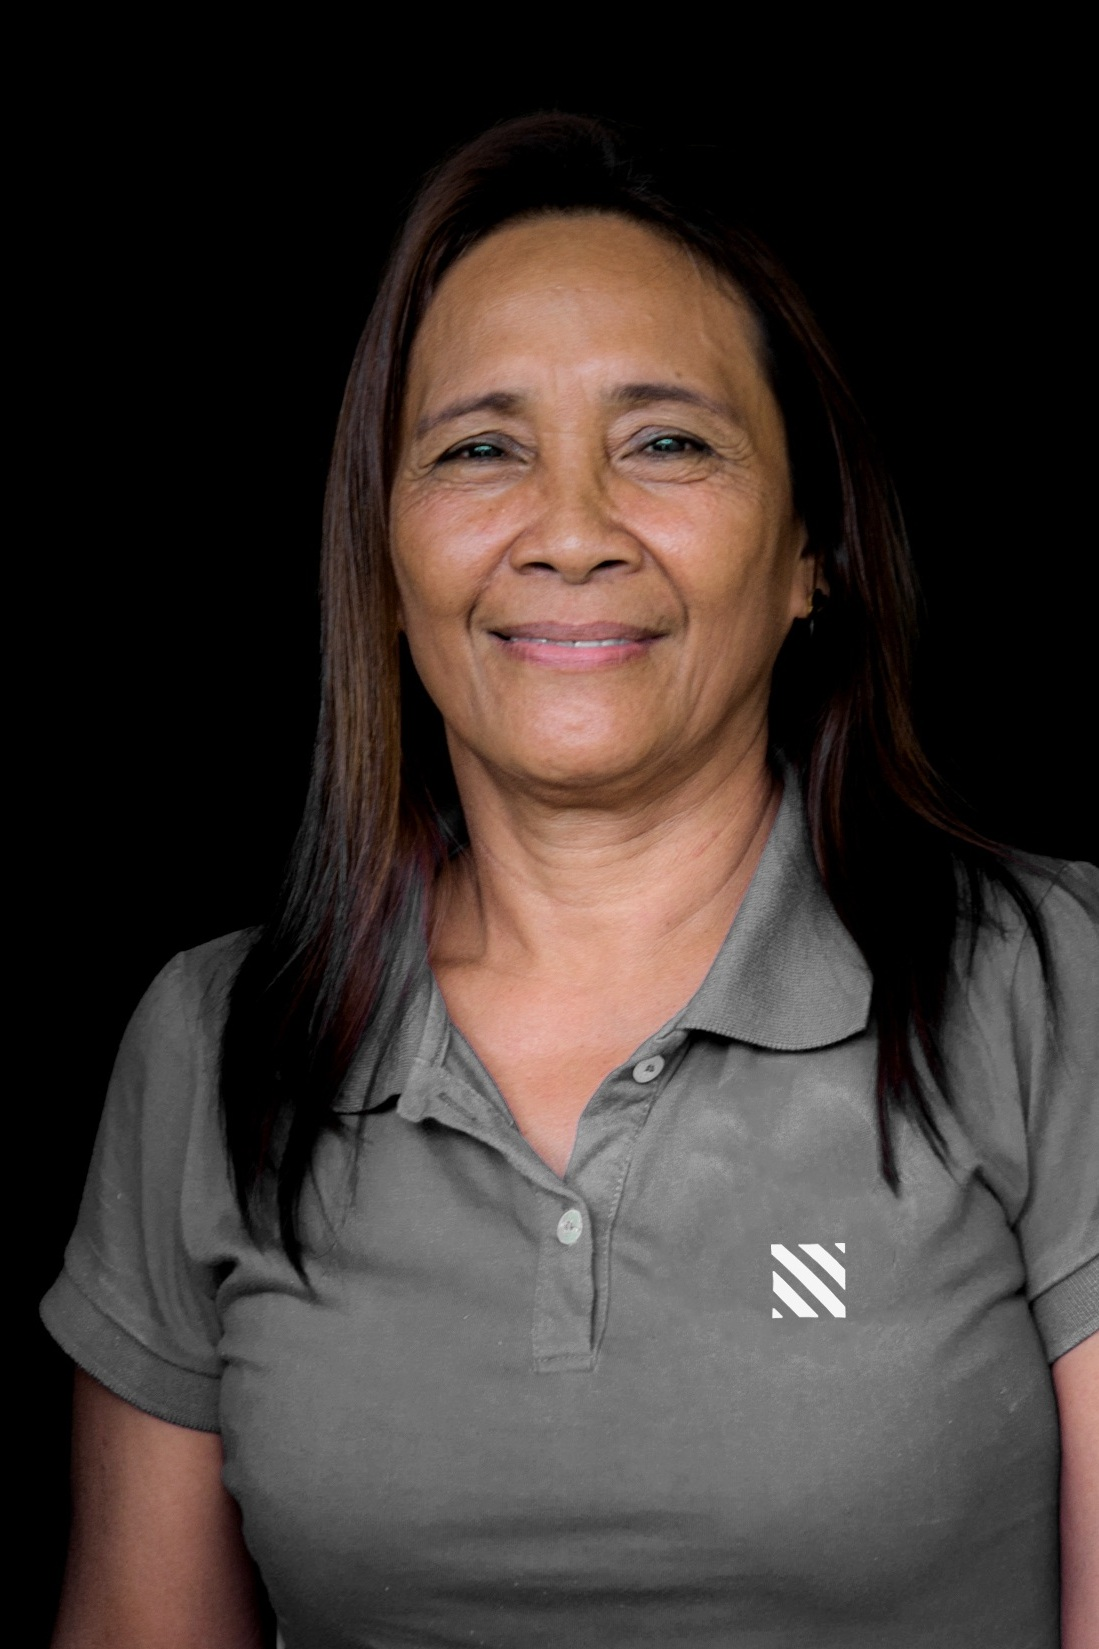 Rosamie Cabe - Community Facilitator - Rosamie is responsible for data collection, field research and facilitates activities supporting the Learning Center implementation in each of the villages in the Philippines.